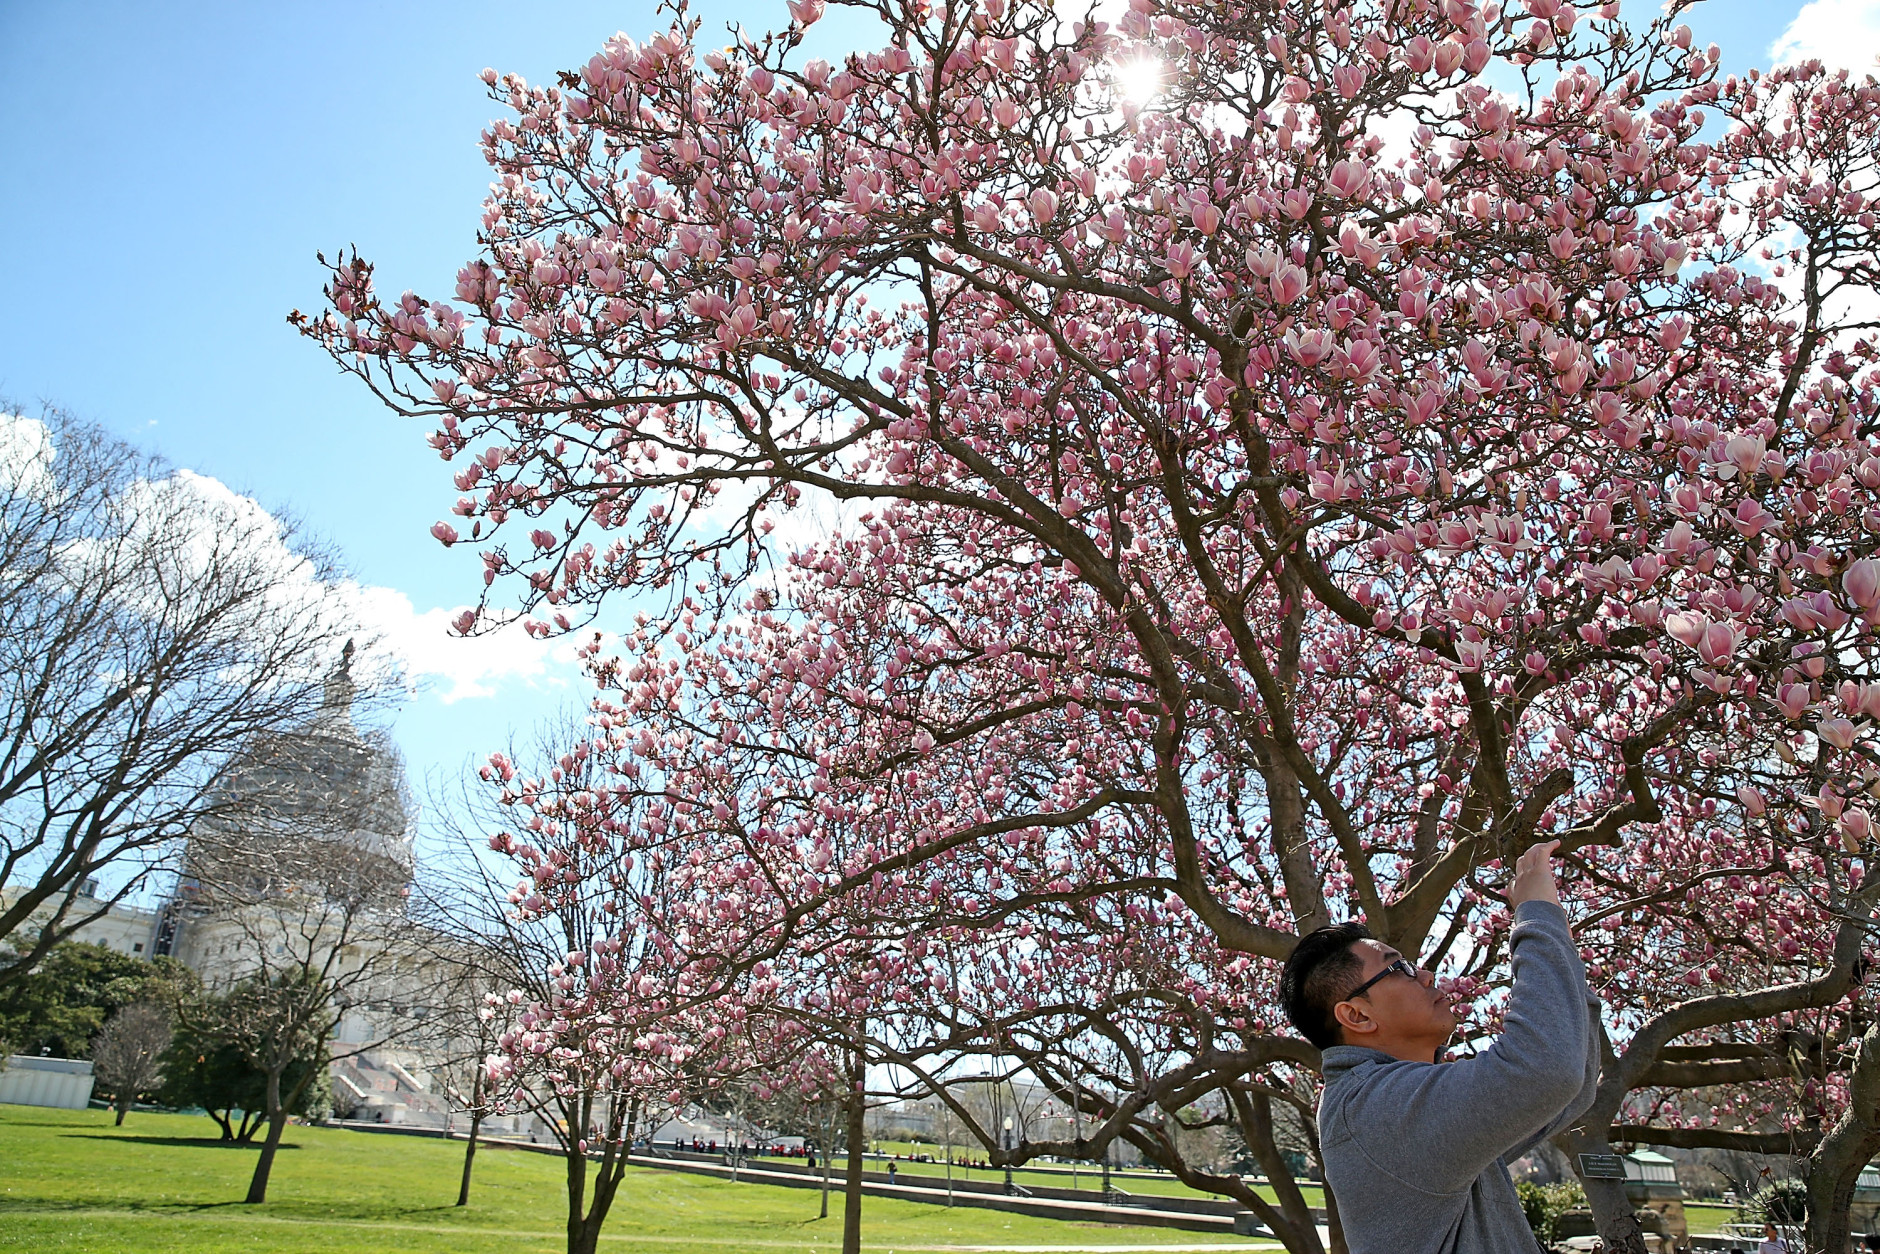 A tourist takes a picture of a blooming Magnolia tree on the grounds of the U.S. Capitol on March 18, 2016 in Washington, D.C. (Photo by Mark Wilson/Getty Images)